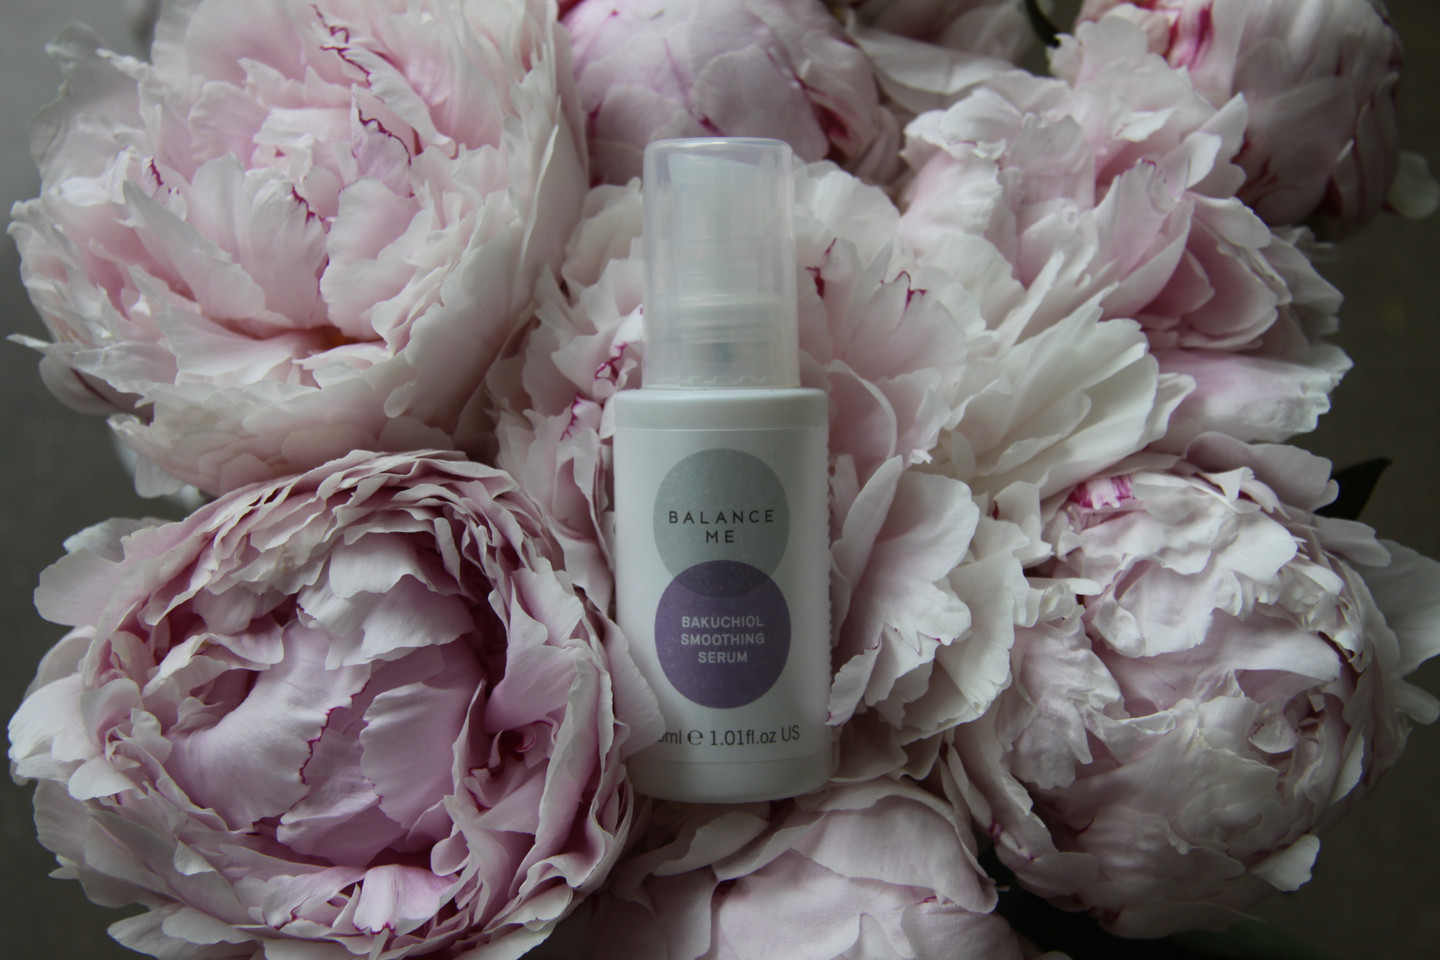 Introducing our new Bakuchiol Smoothing Serum